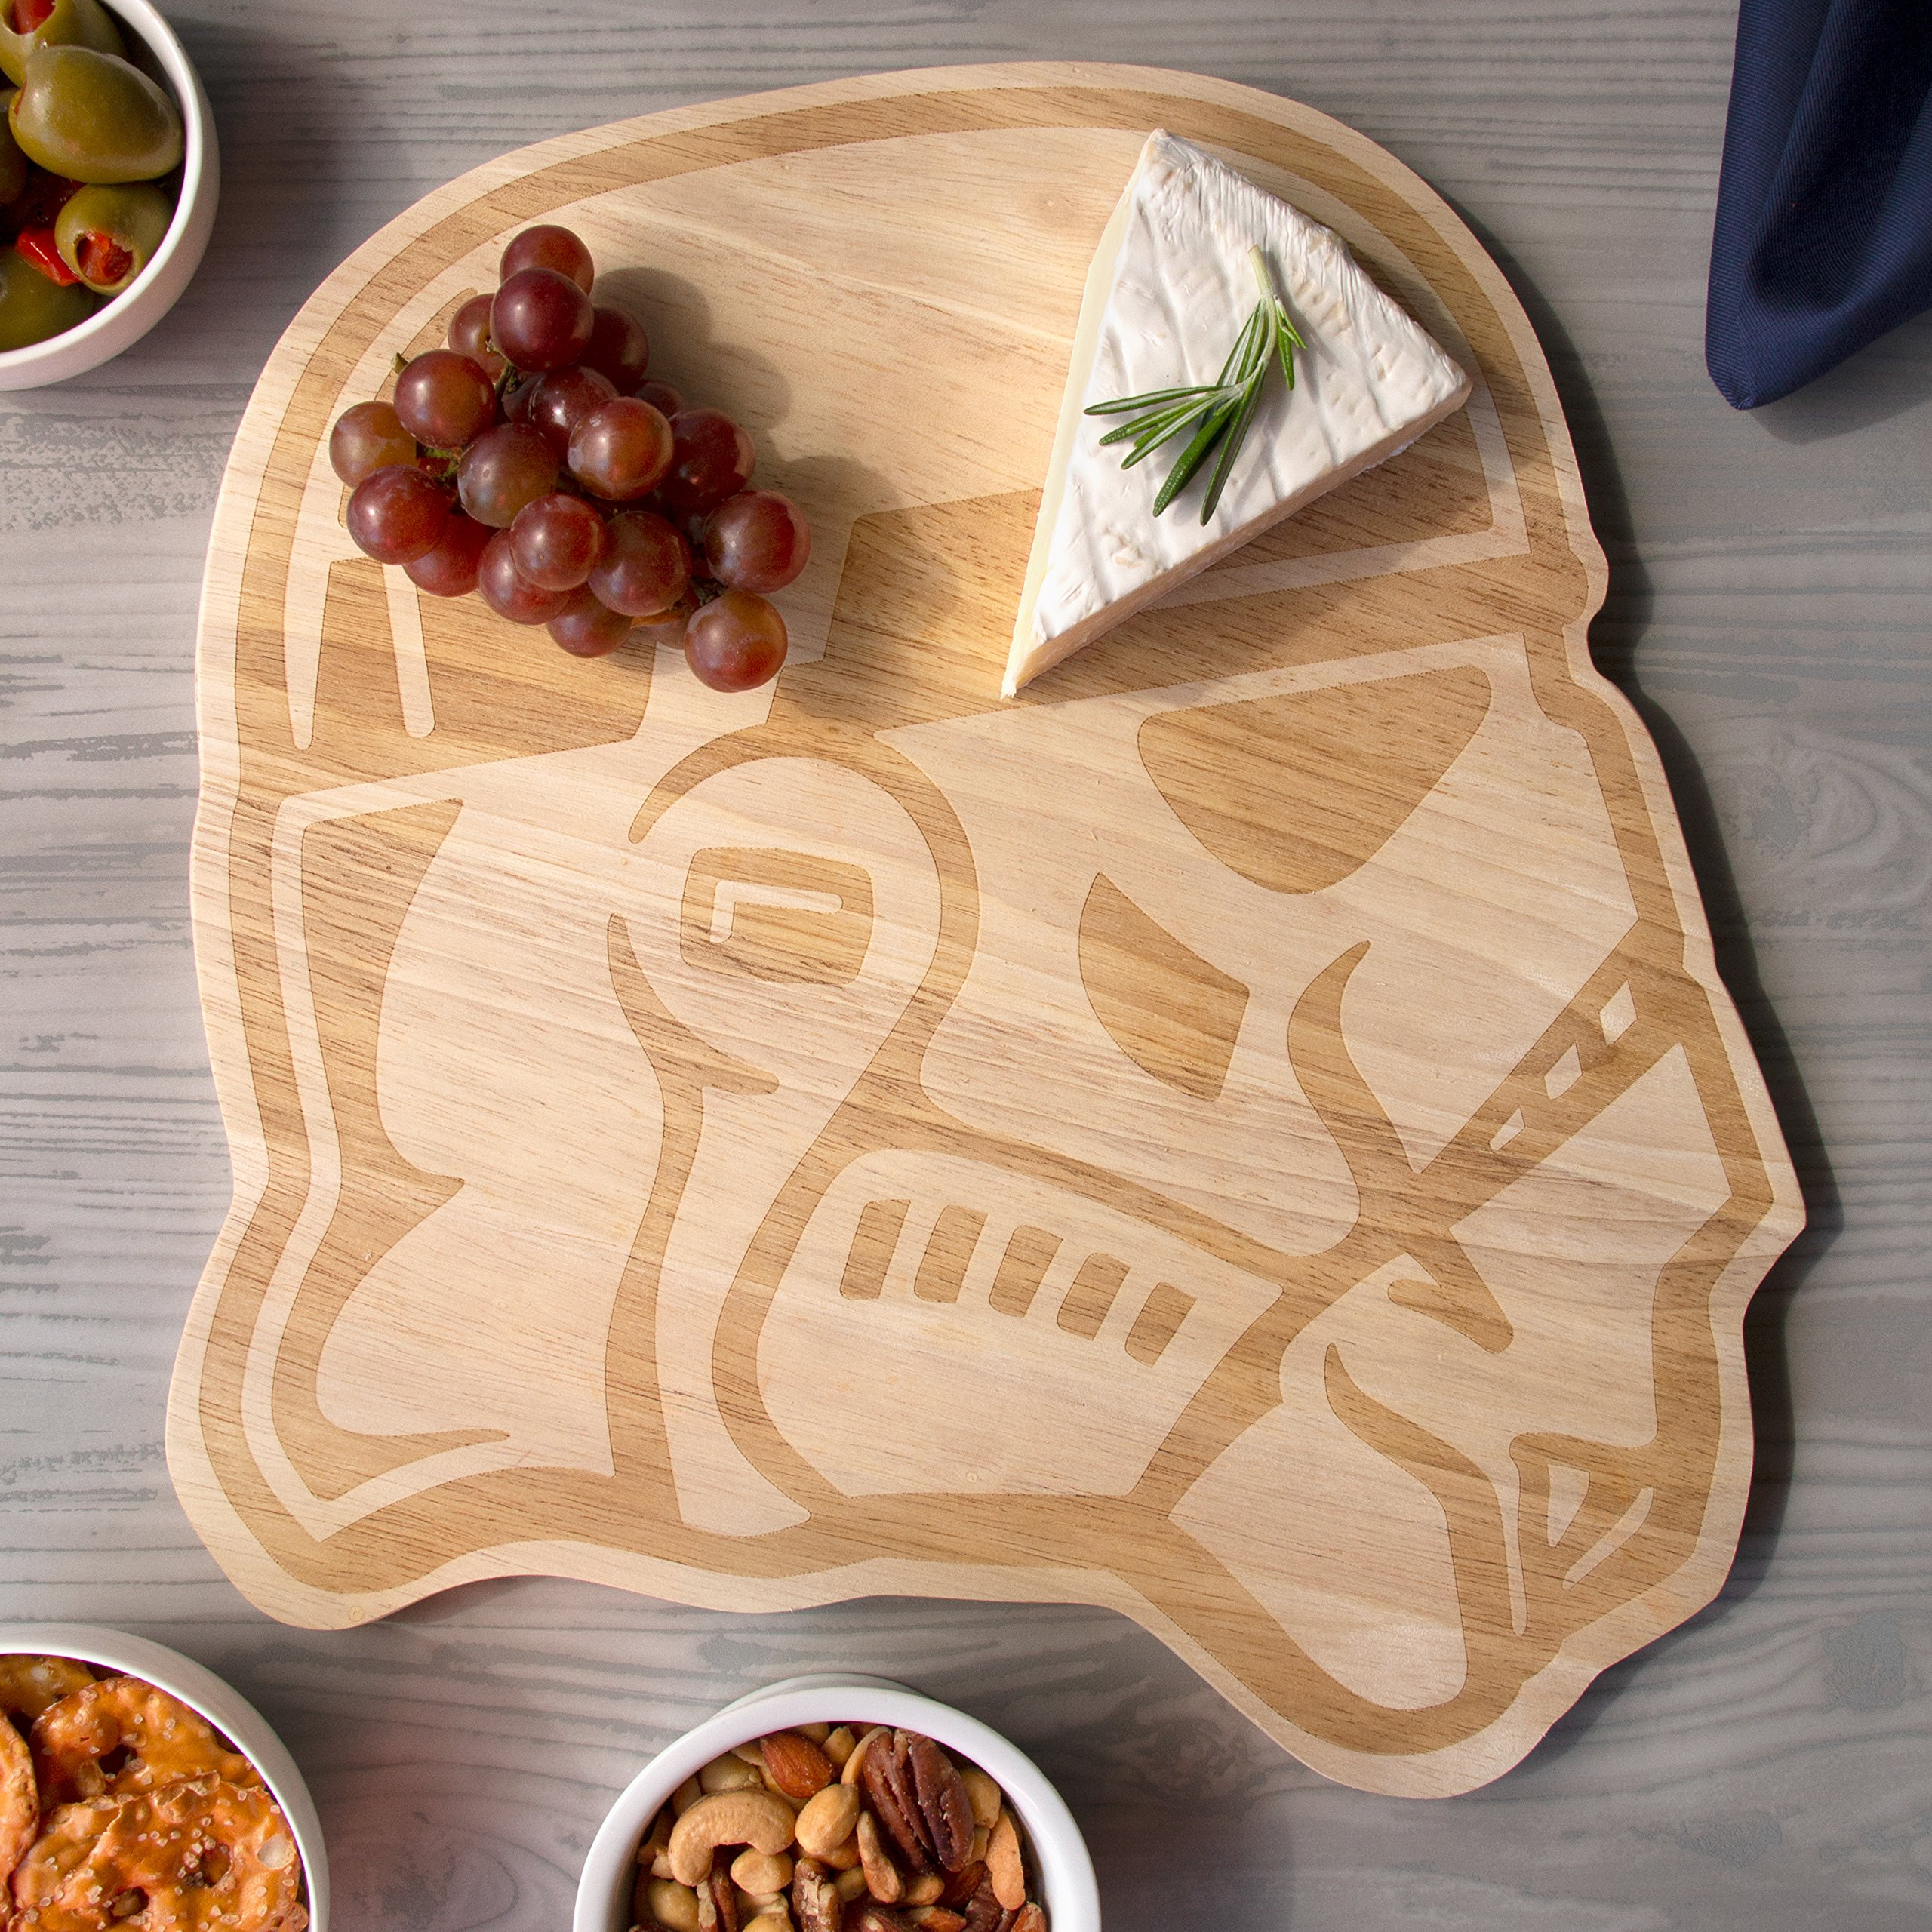 Star Wars Stormtrooper Wood Cutting Board - Perfect for Serving and Parties - 12 1/2'' x 13'' by Star Wars (Image #5)